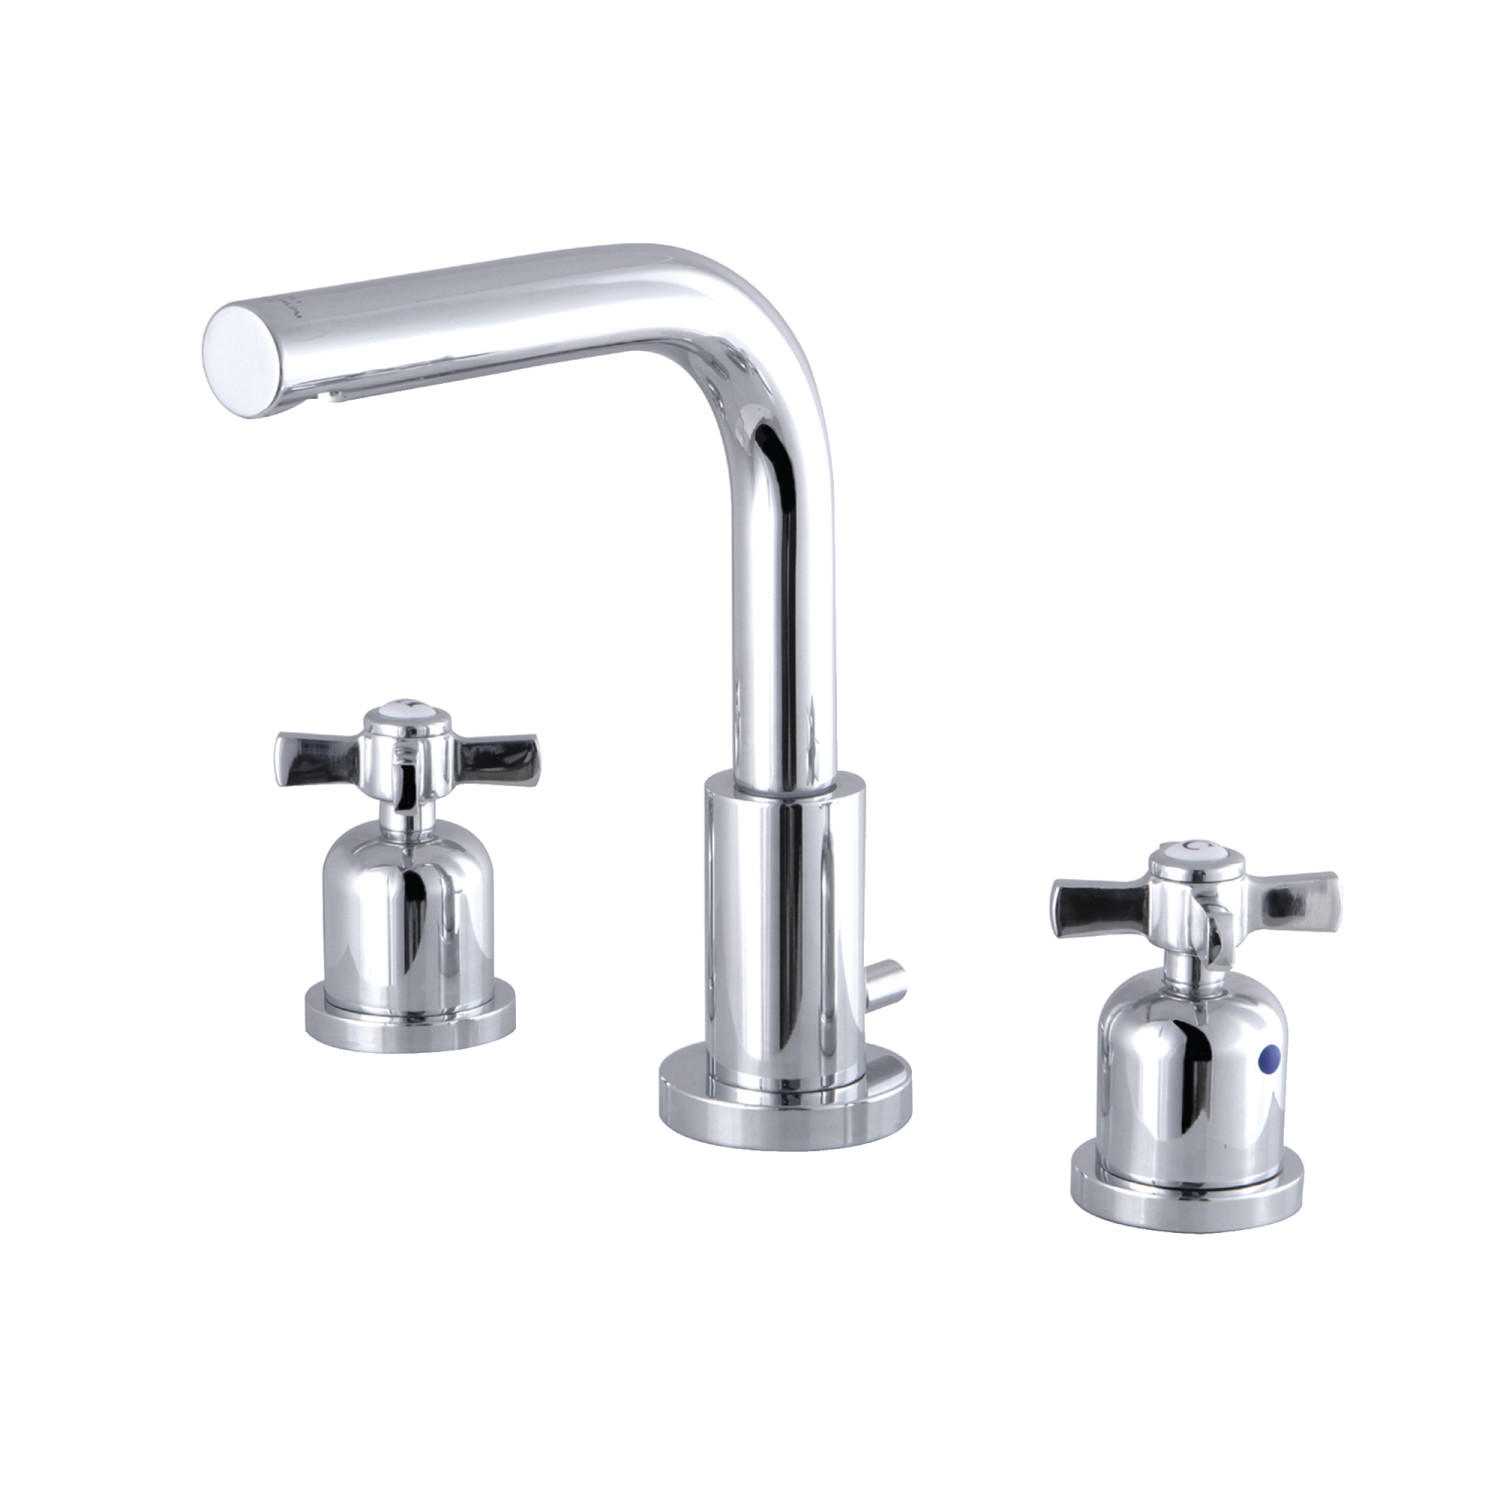 Modern Two-Handle 3-Hole Deck Mounted Widespread Bathroom Faucet with Brass Pop-Up with 6 Finish Options